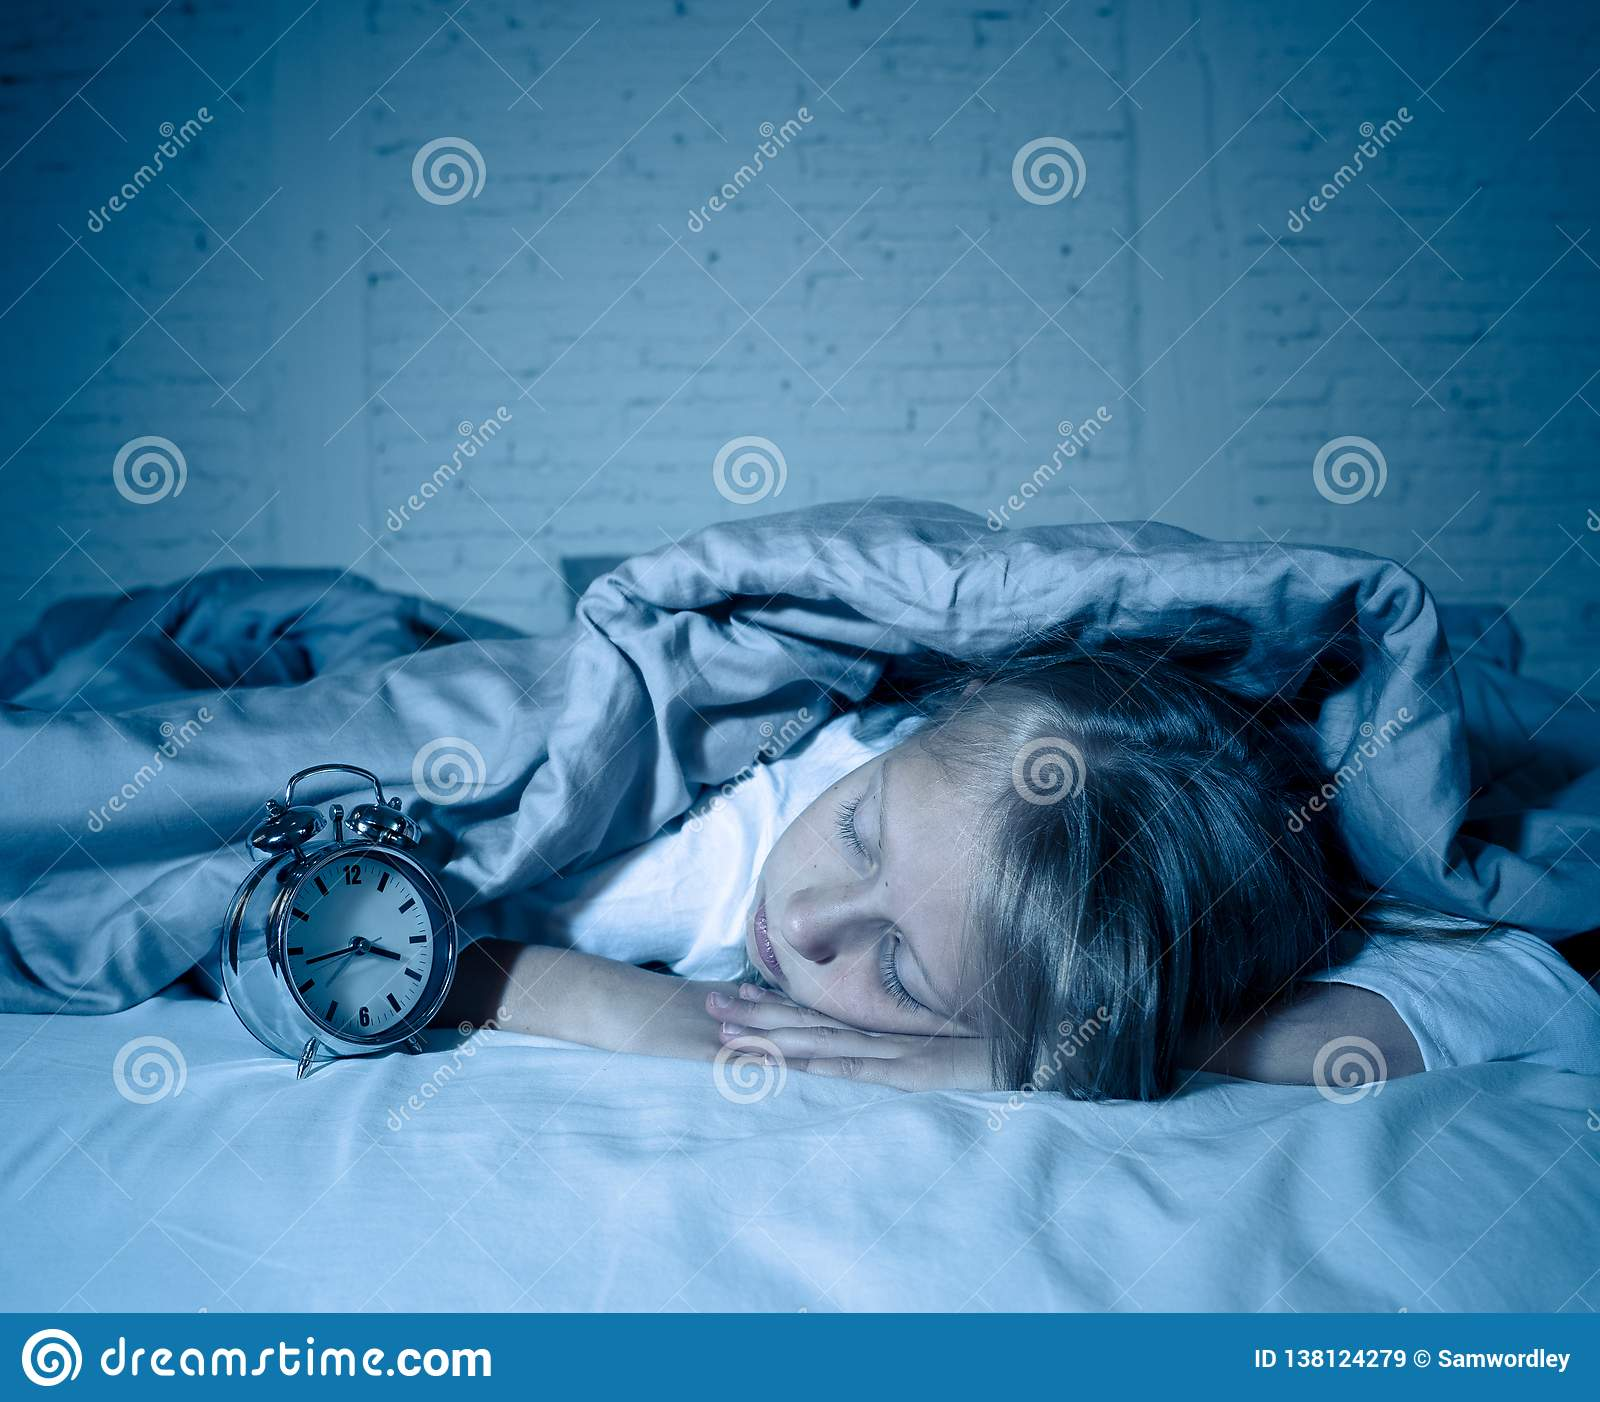 Little girl lying awake in the middle of the night tired and restless suffering sleeping disorders